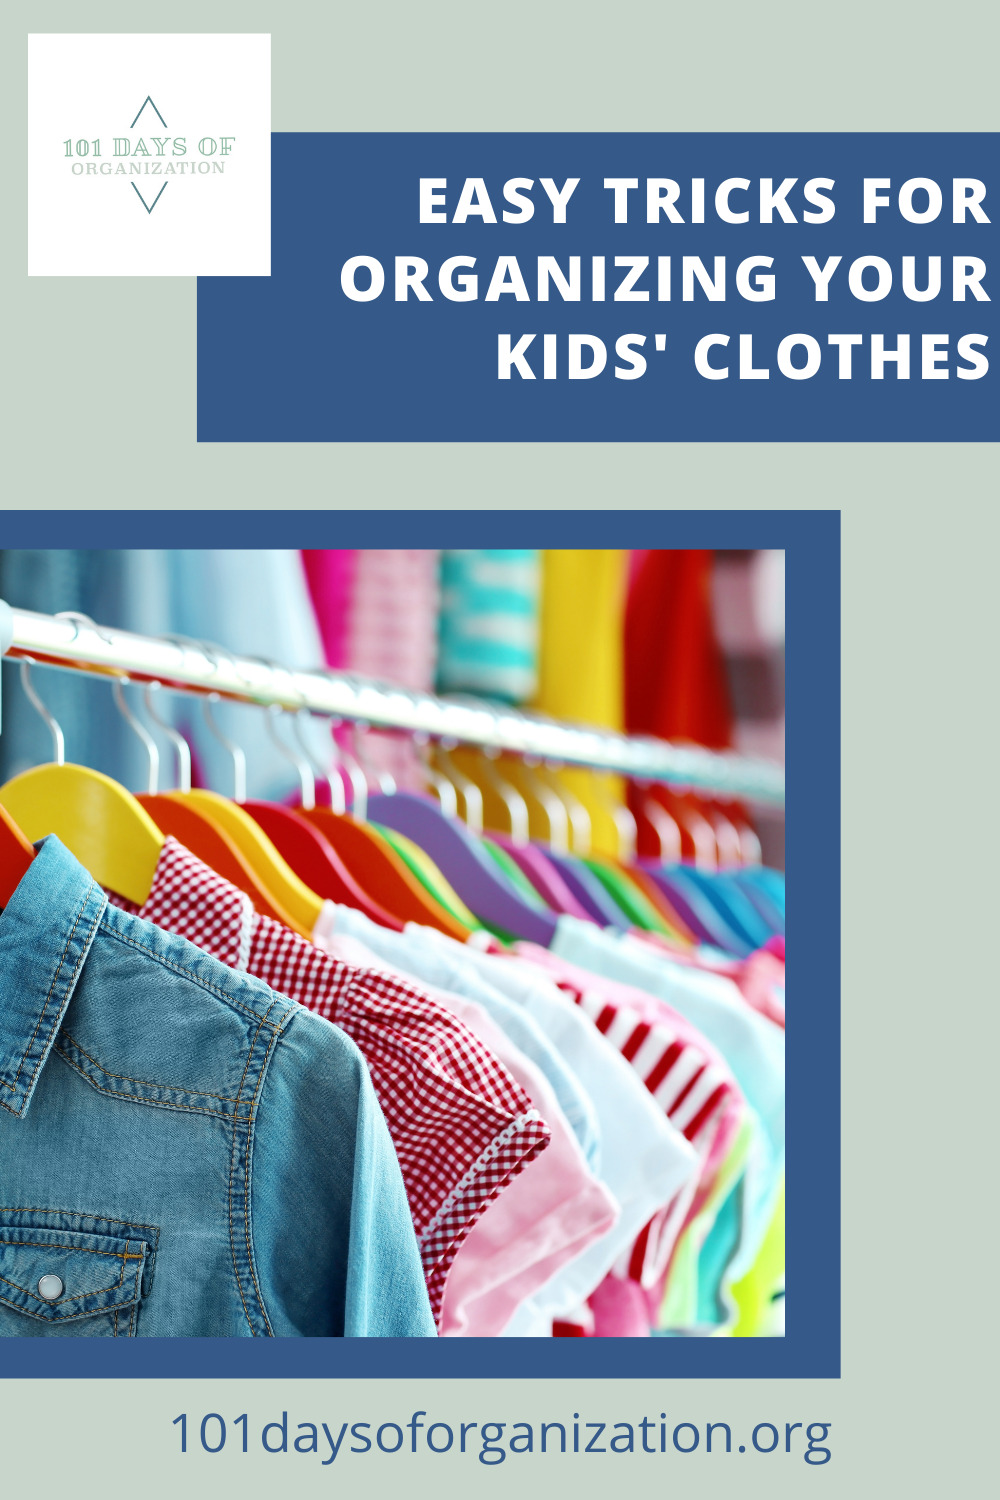 101daysoforganization.org has all the best ideas for cleaning up the sticky messes in your life! Find easy ways to get your home more organized than ever before! Get started with these super easy kid clothing organization ideas!